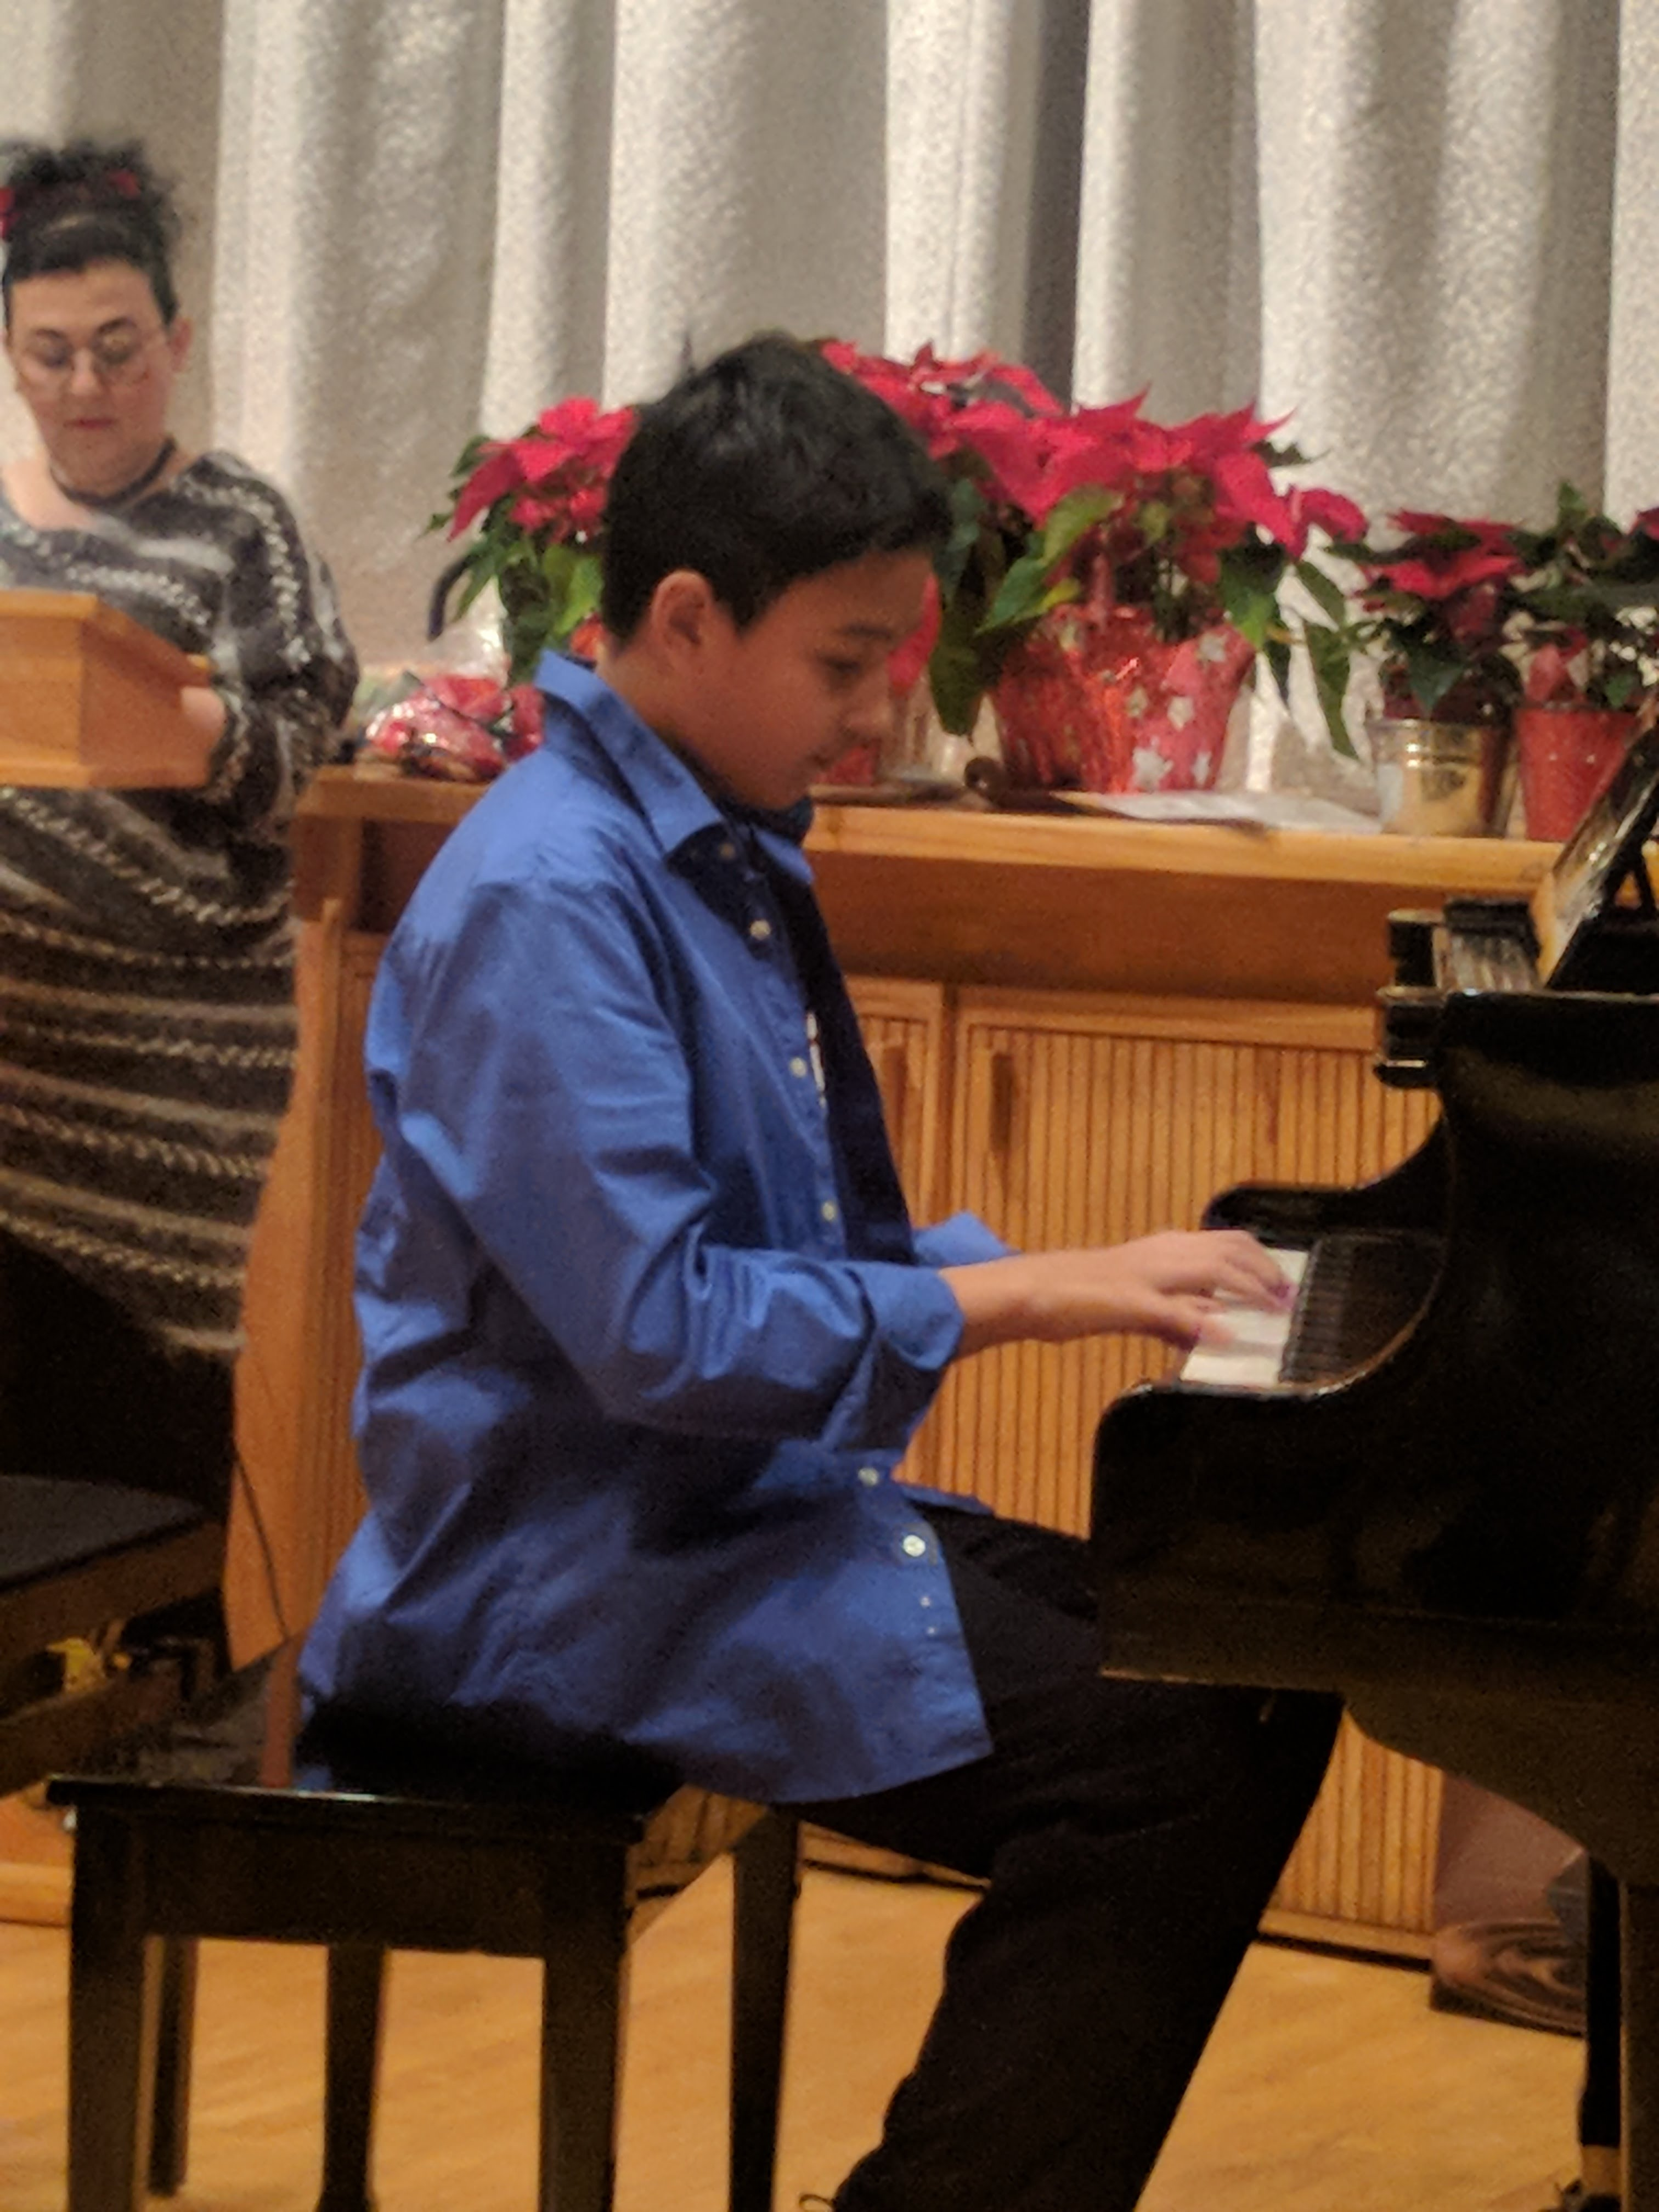 young boy in blue jacket playing a piano